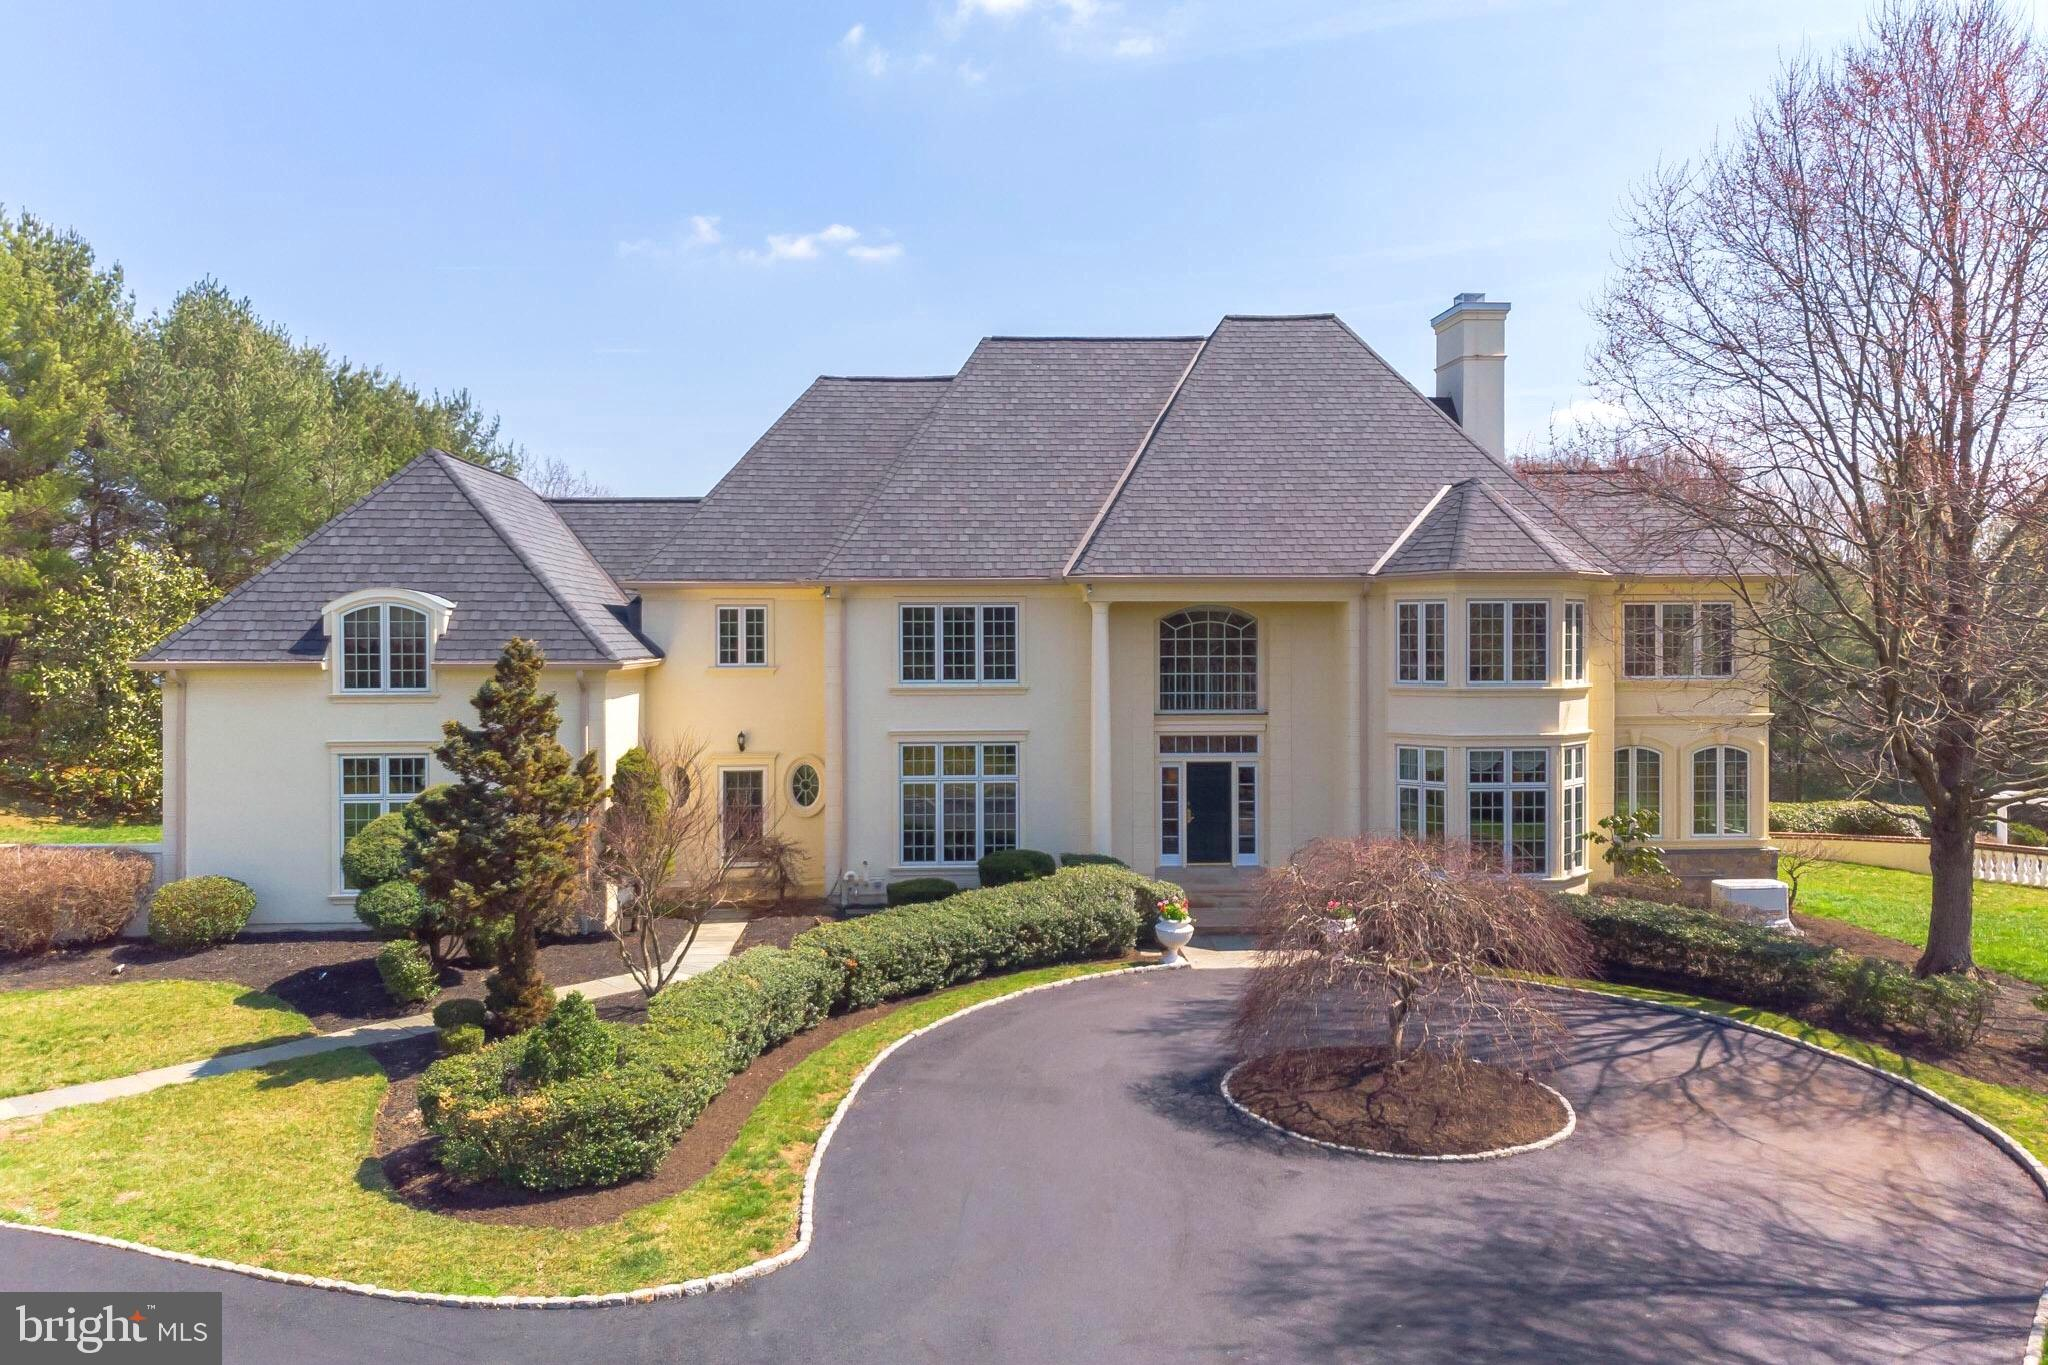 1280 CONTINENTAL LINE LANE, WEST CHESTER, PA 19382